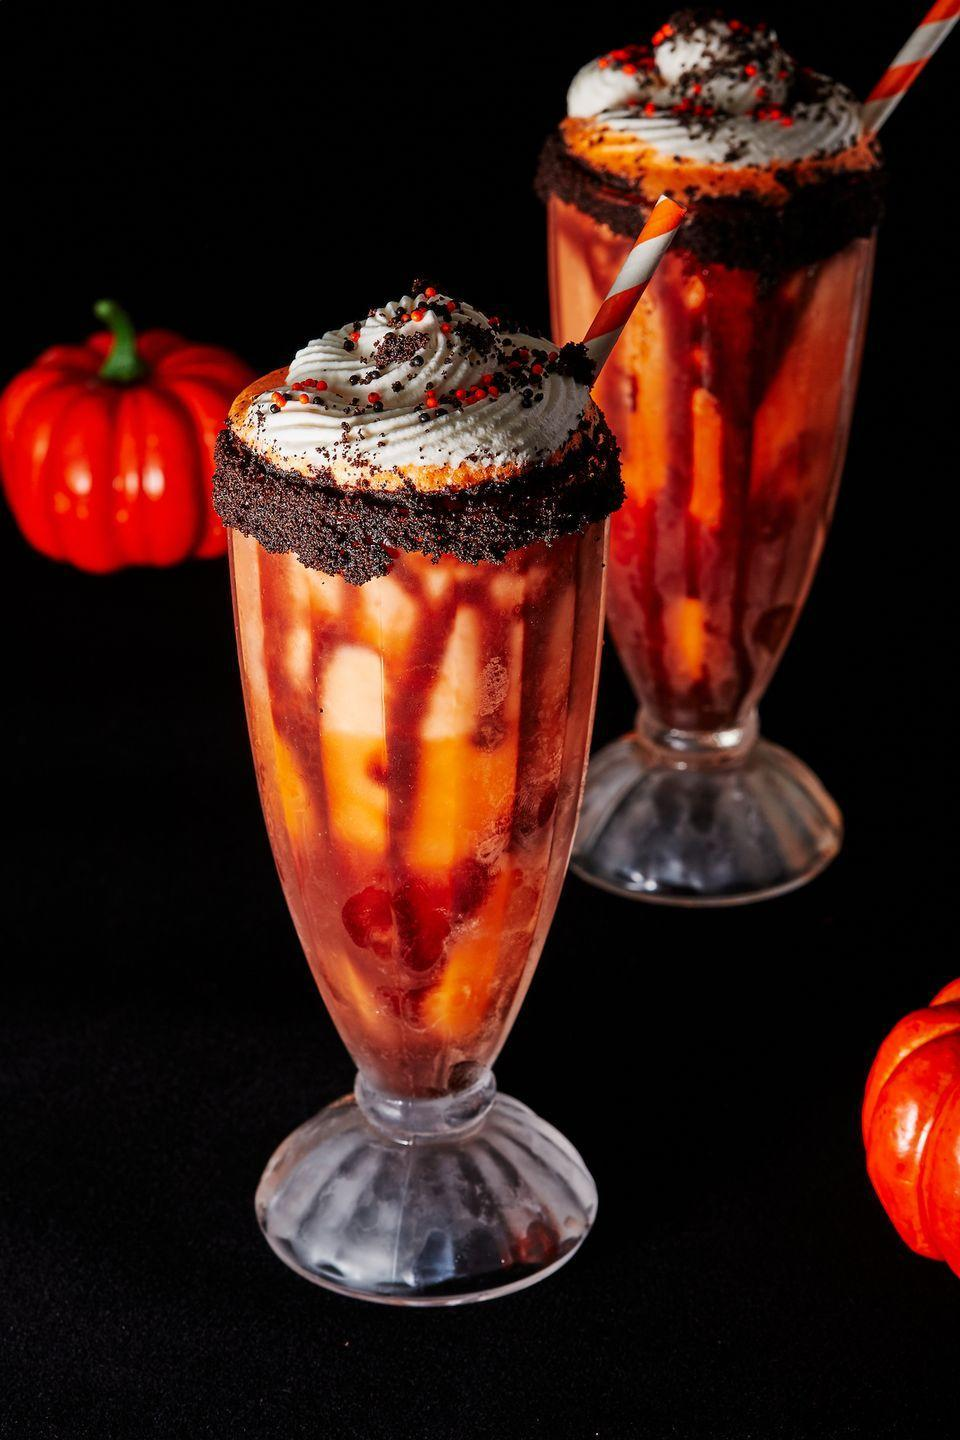 "<p>Boozy milkshakes bring everyone to the yard...</p><p>Get the recipe from <a href=""https://www.delish.com/holiday-recipes/halloween/a29007809/boozy-screamsicle-shakes-recipe/"" rel=""nofollow noopener"" target=""_blank"" data-ylk=""slk:Delish"" class=""link rapid-noclick-resp"">Delish</a>. </p>"